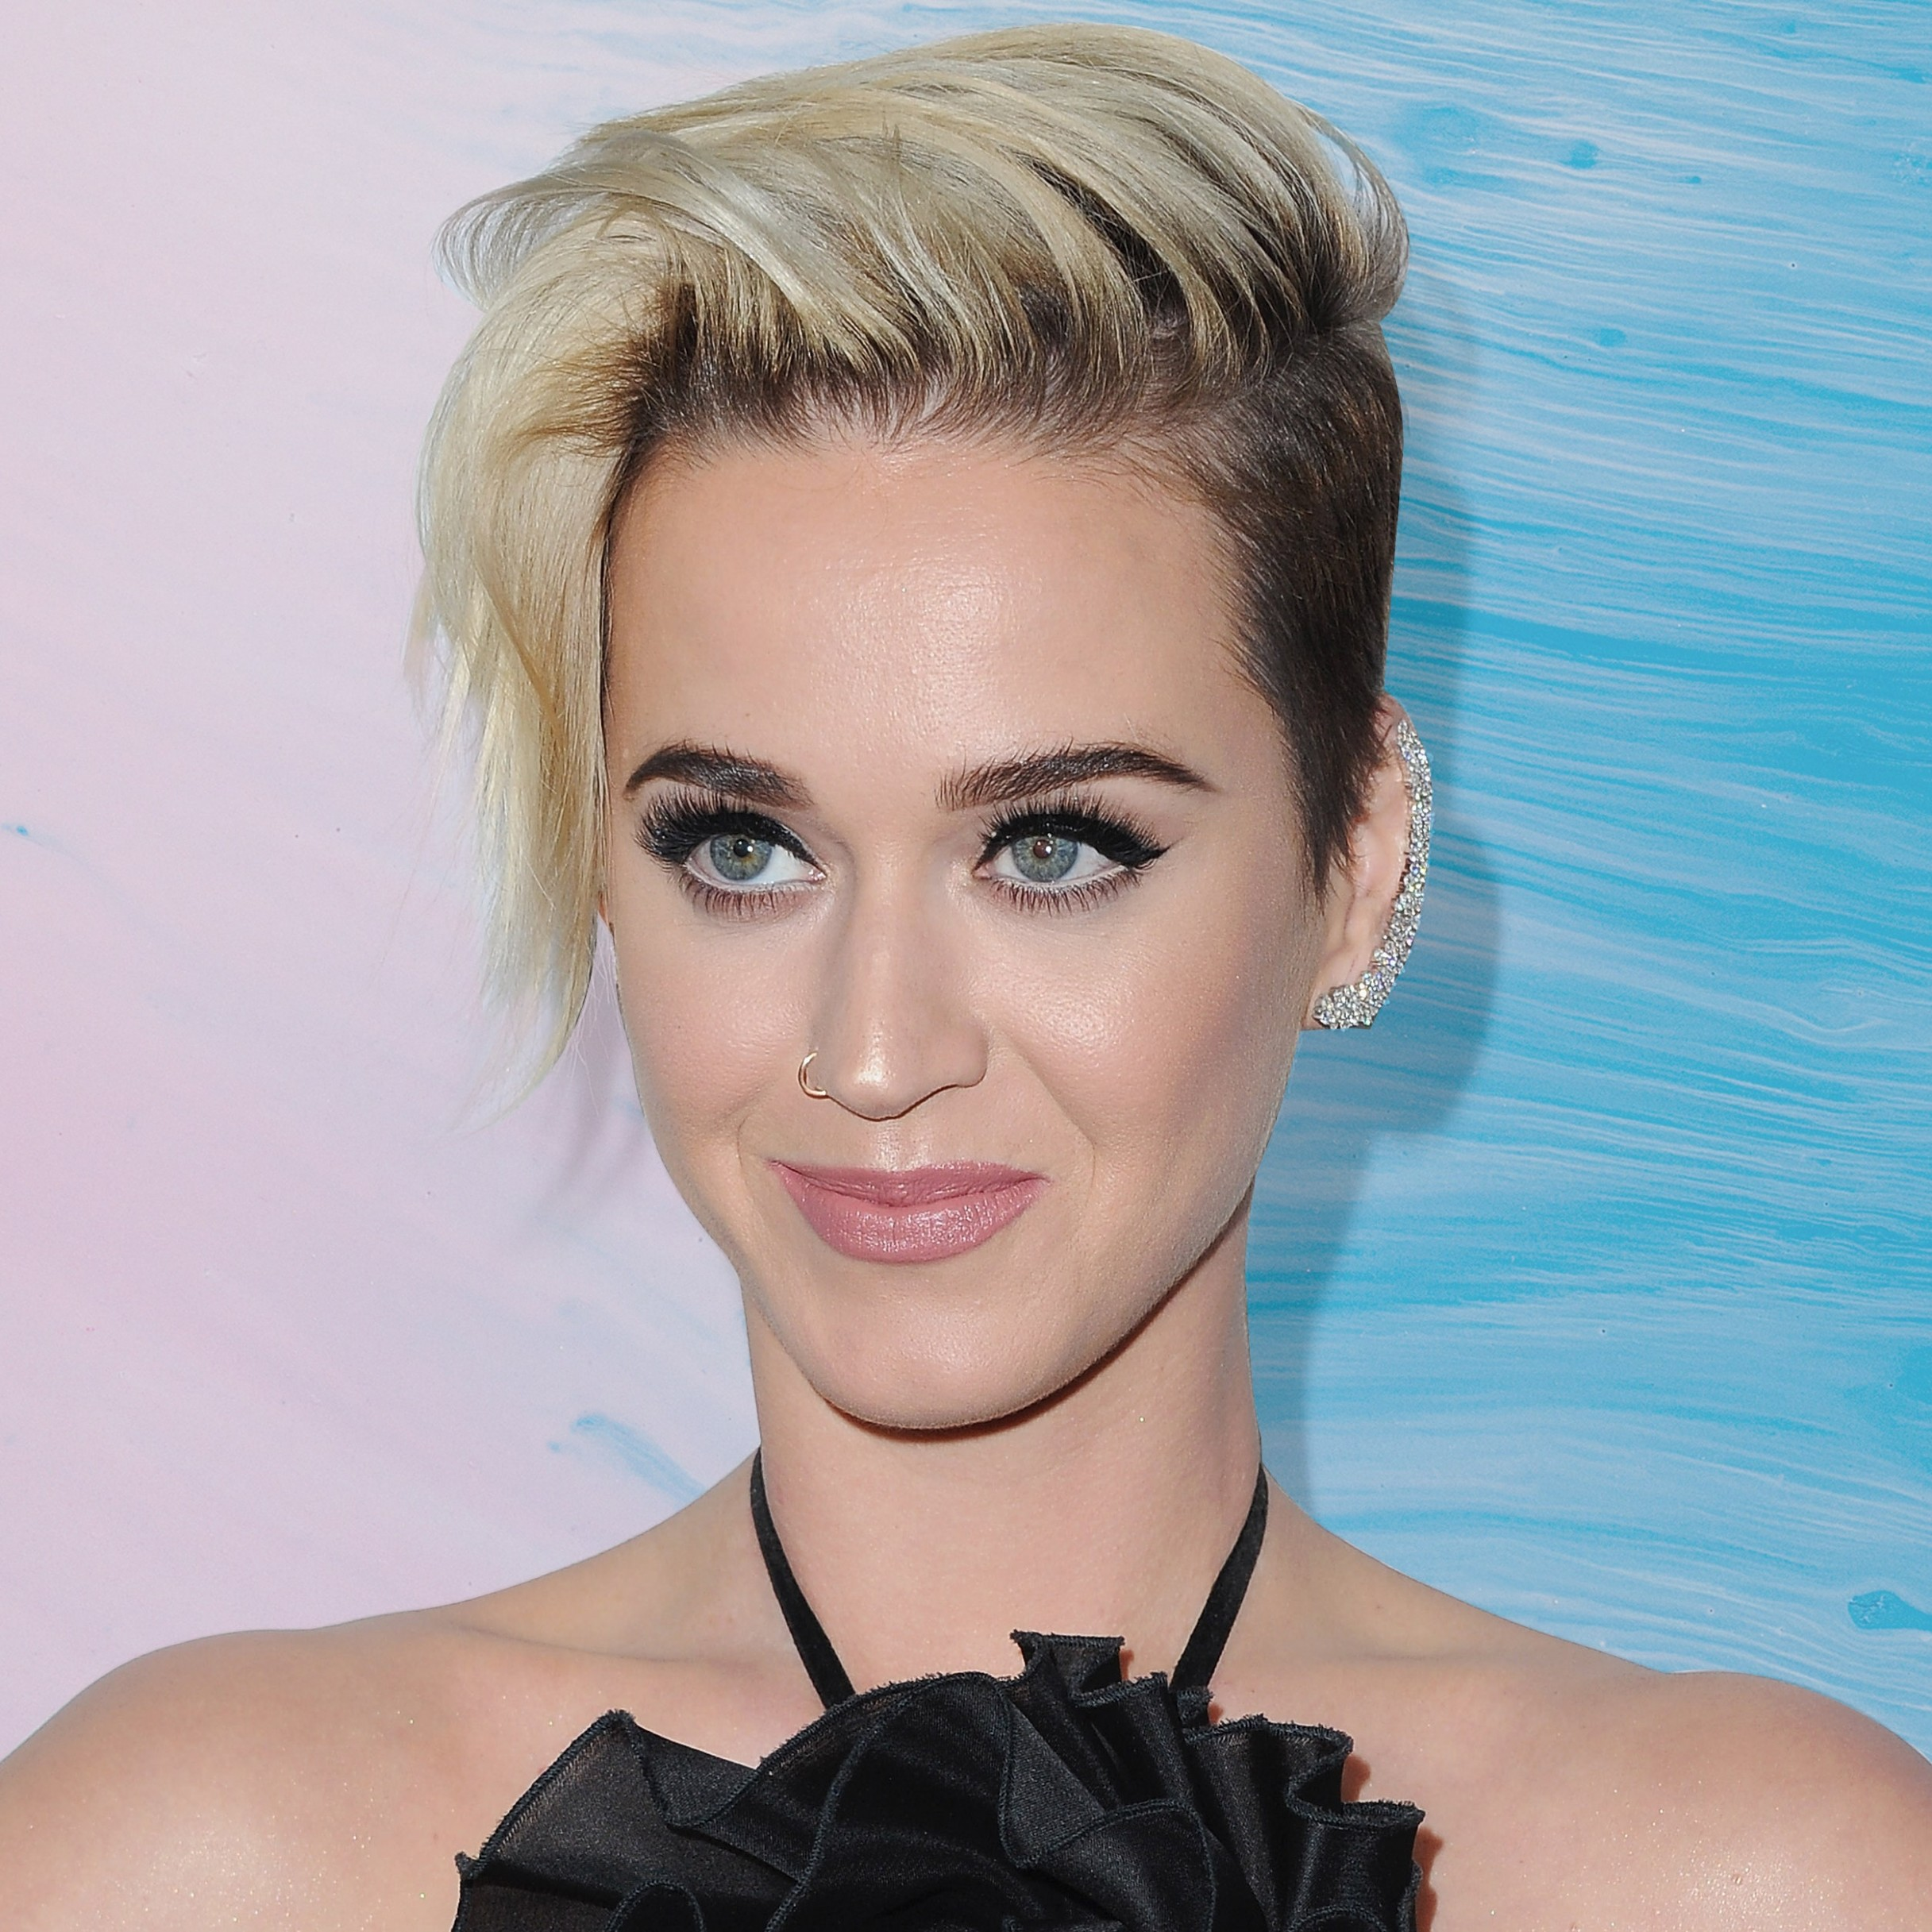 Katy Perry Just Committed To Her Pixie Haircut By Going Shorter Katy Perry Short Haircut